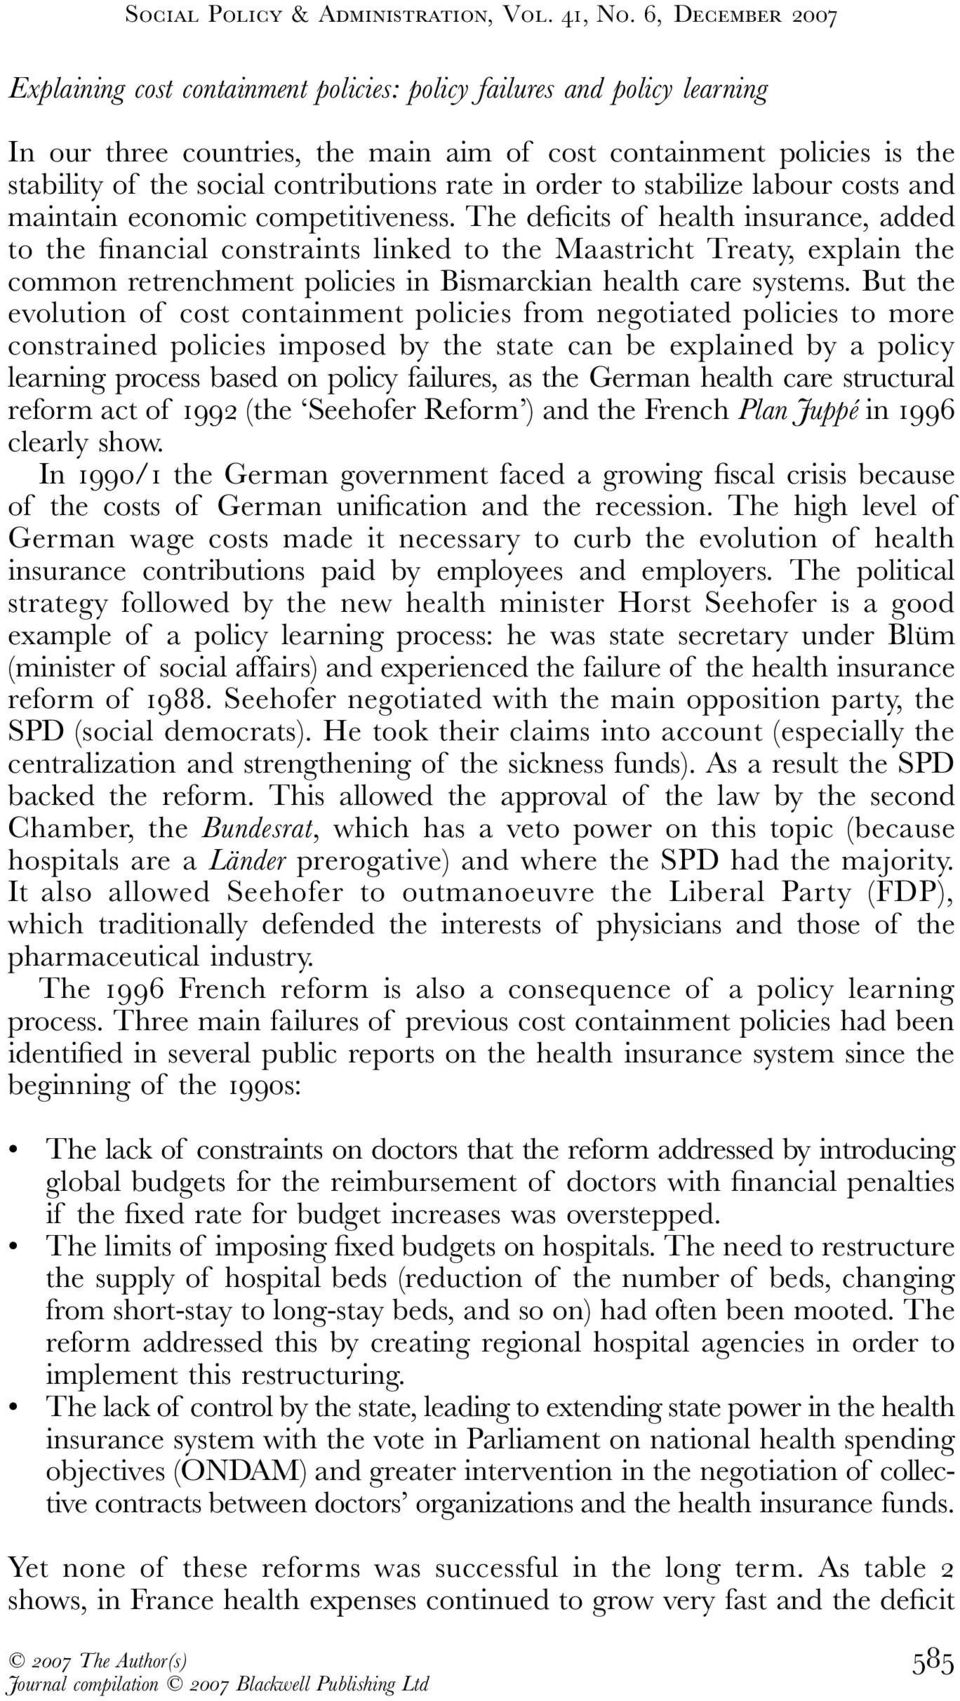 The deficits of health insurance, added to the financial constraints linked to the Maastricht Treaty, explain the common retrenchment policies in Bismarckian health care systems.